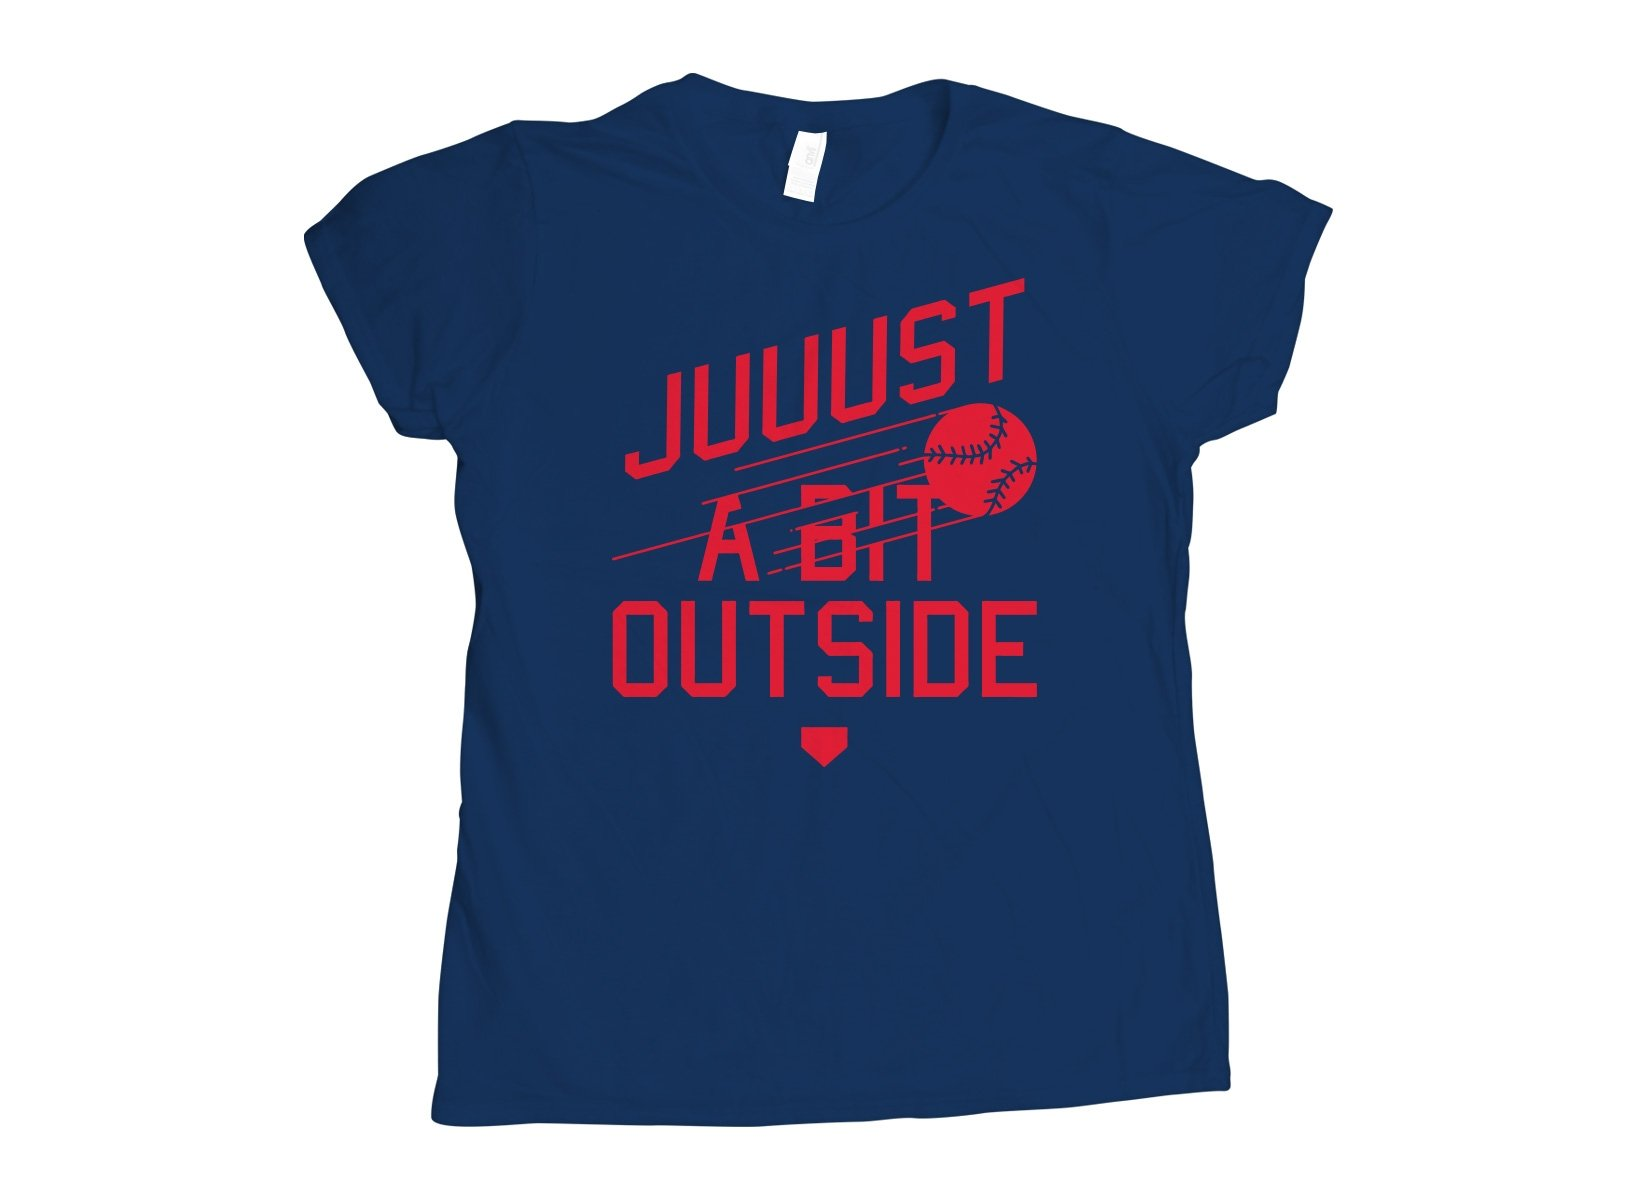 Just A Bit Outside on Womens T-Shirt